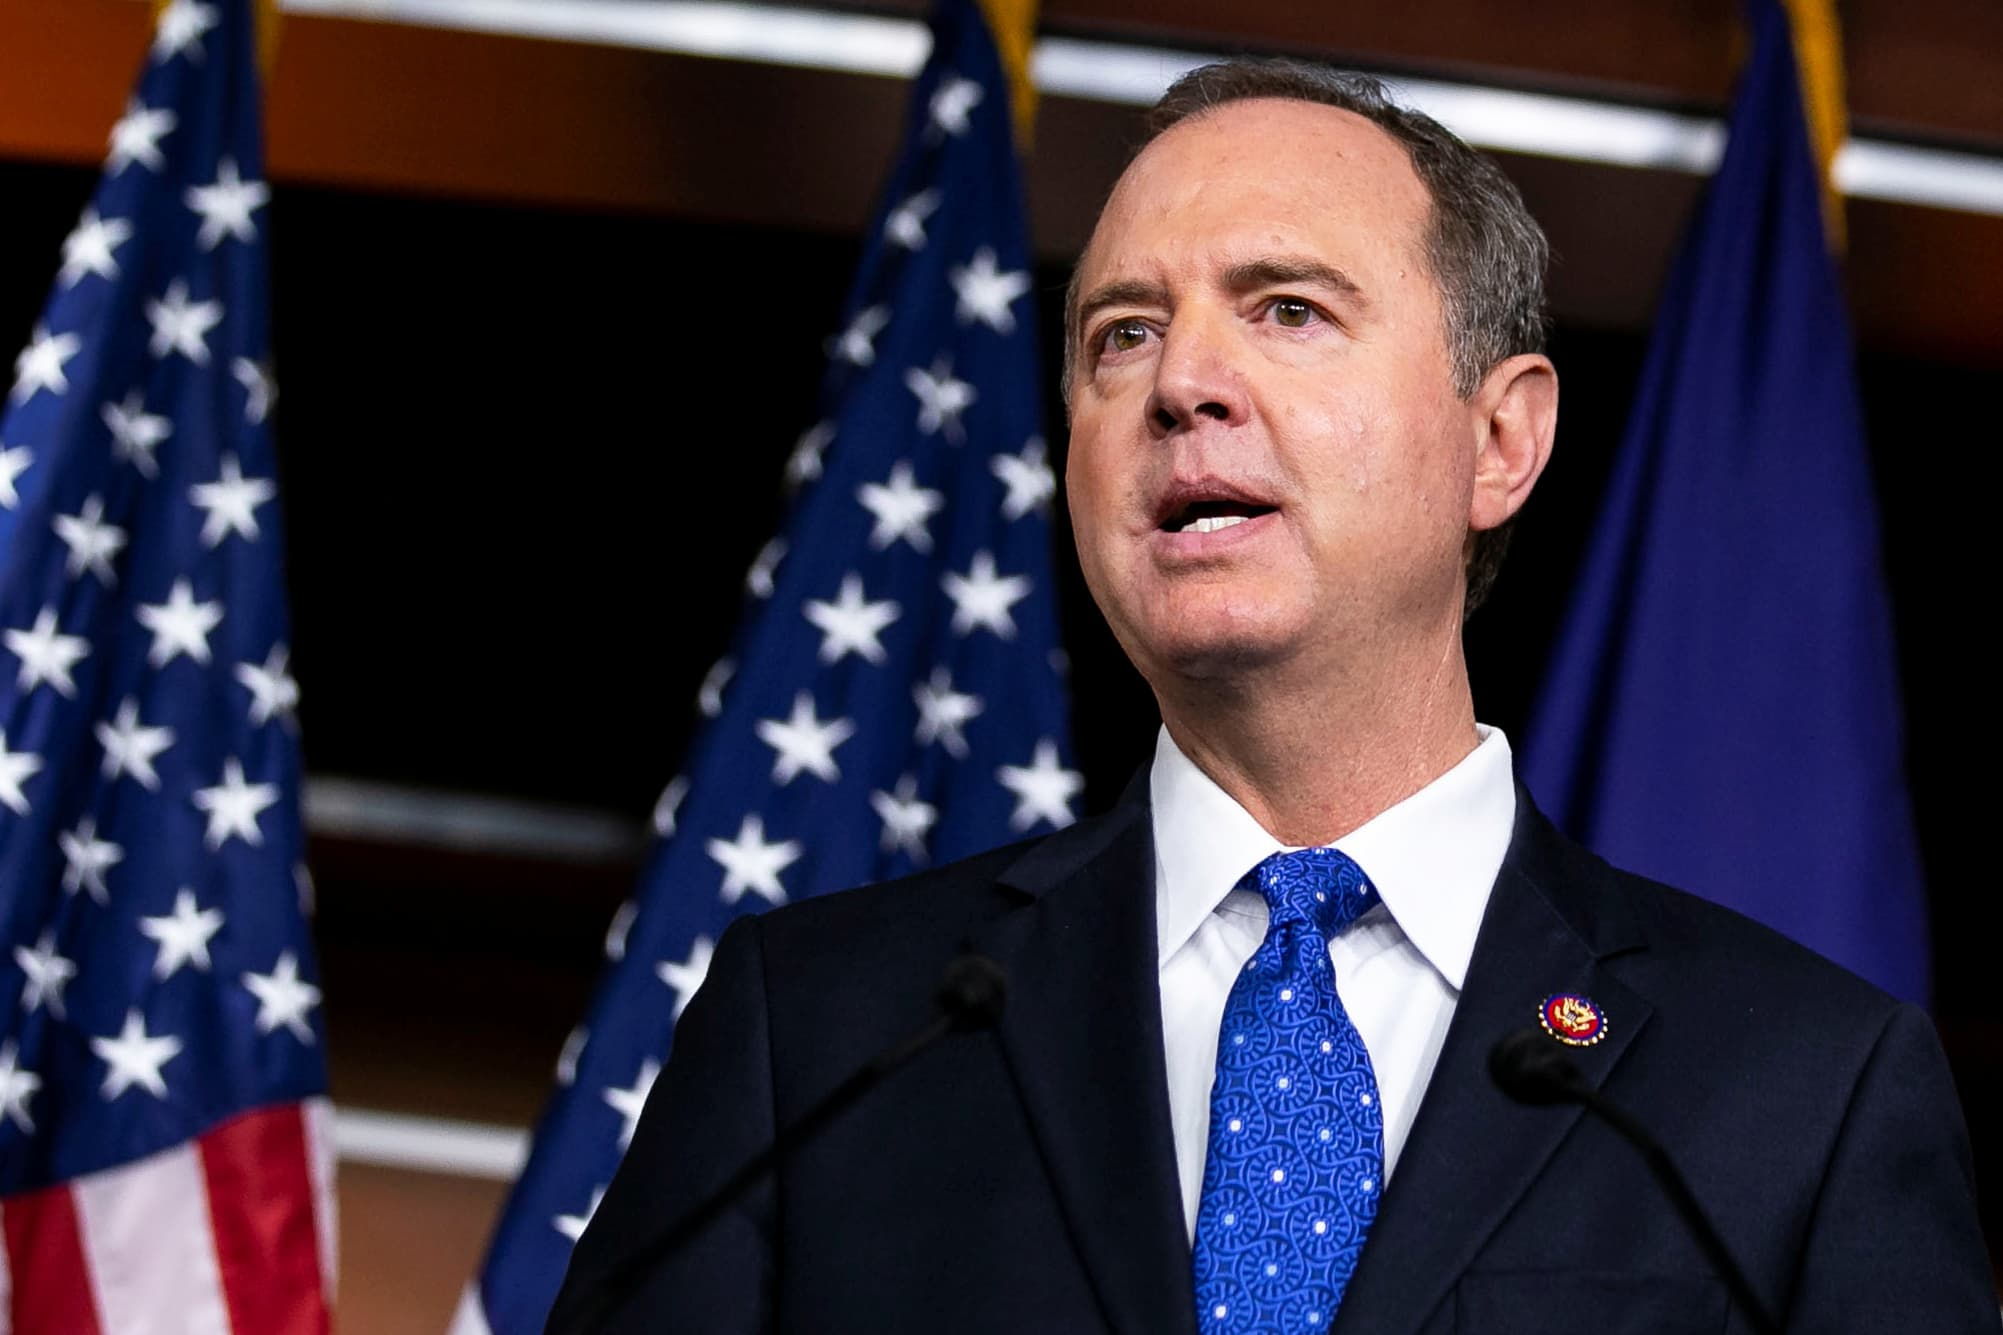 Adam Schiff says Trump asking China to investigate Biden is 'a fundamental breach' of his oath of office